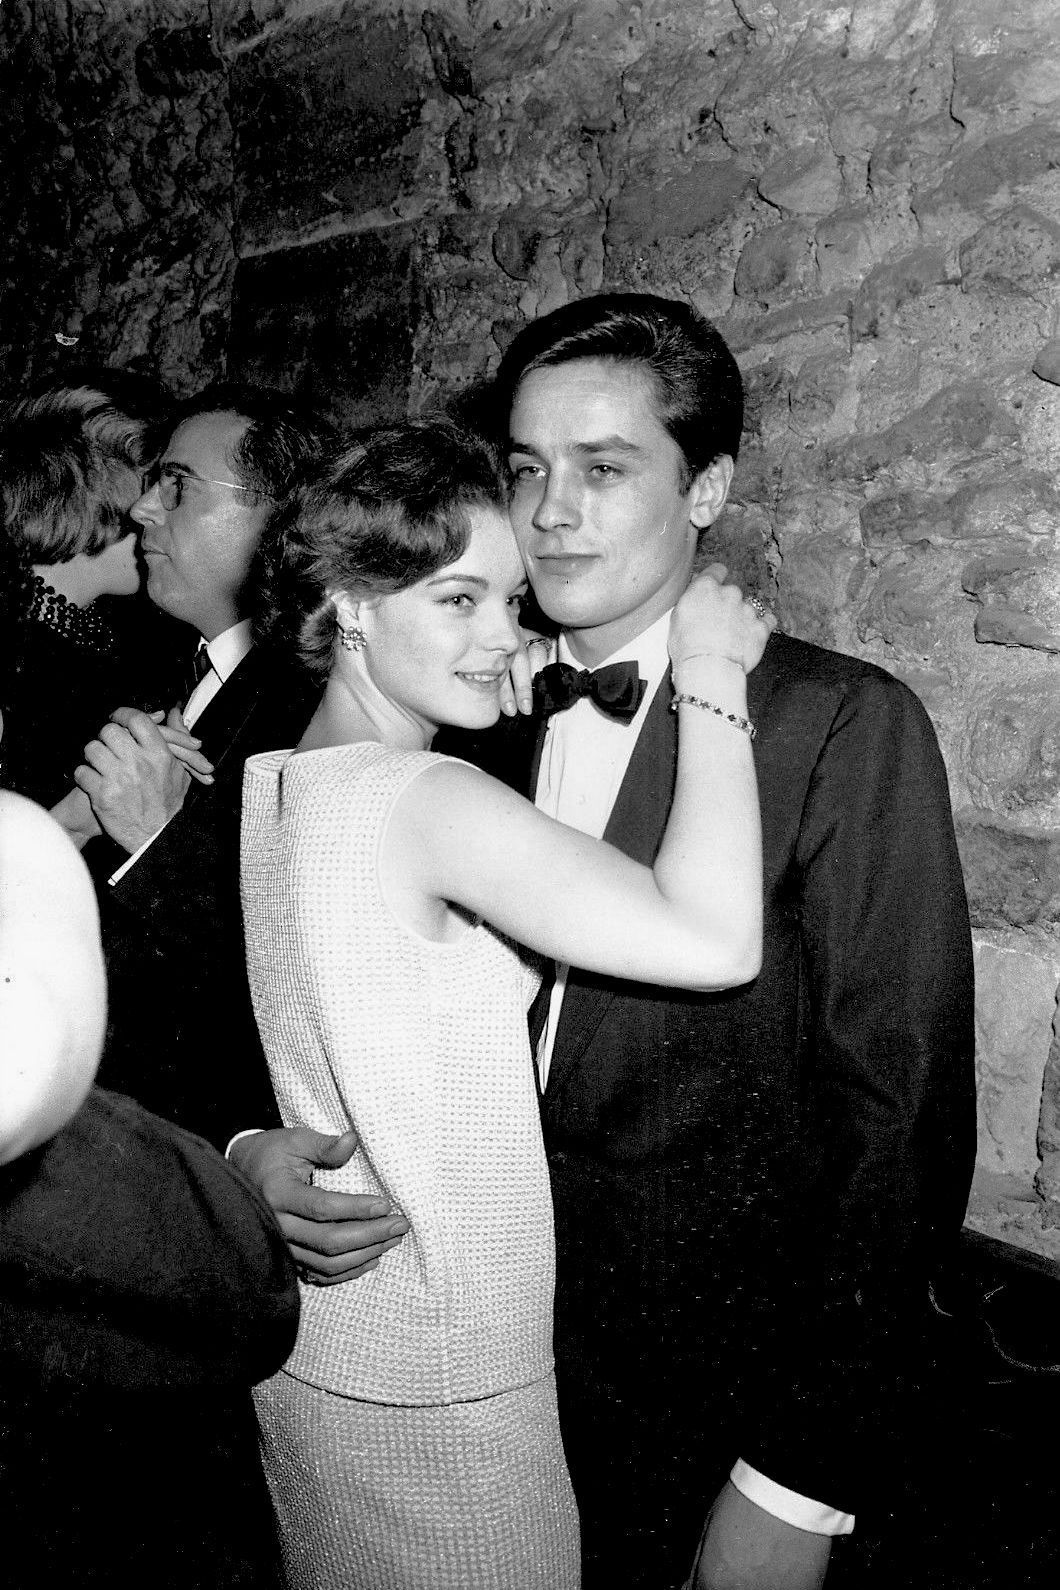 Arte Replay Romy Schneider Alain Delon Romy Schneider Dancing In A Nightclub 1960